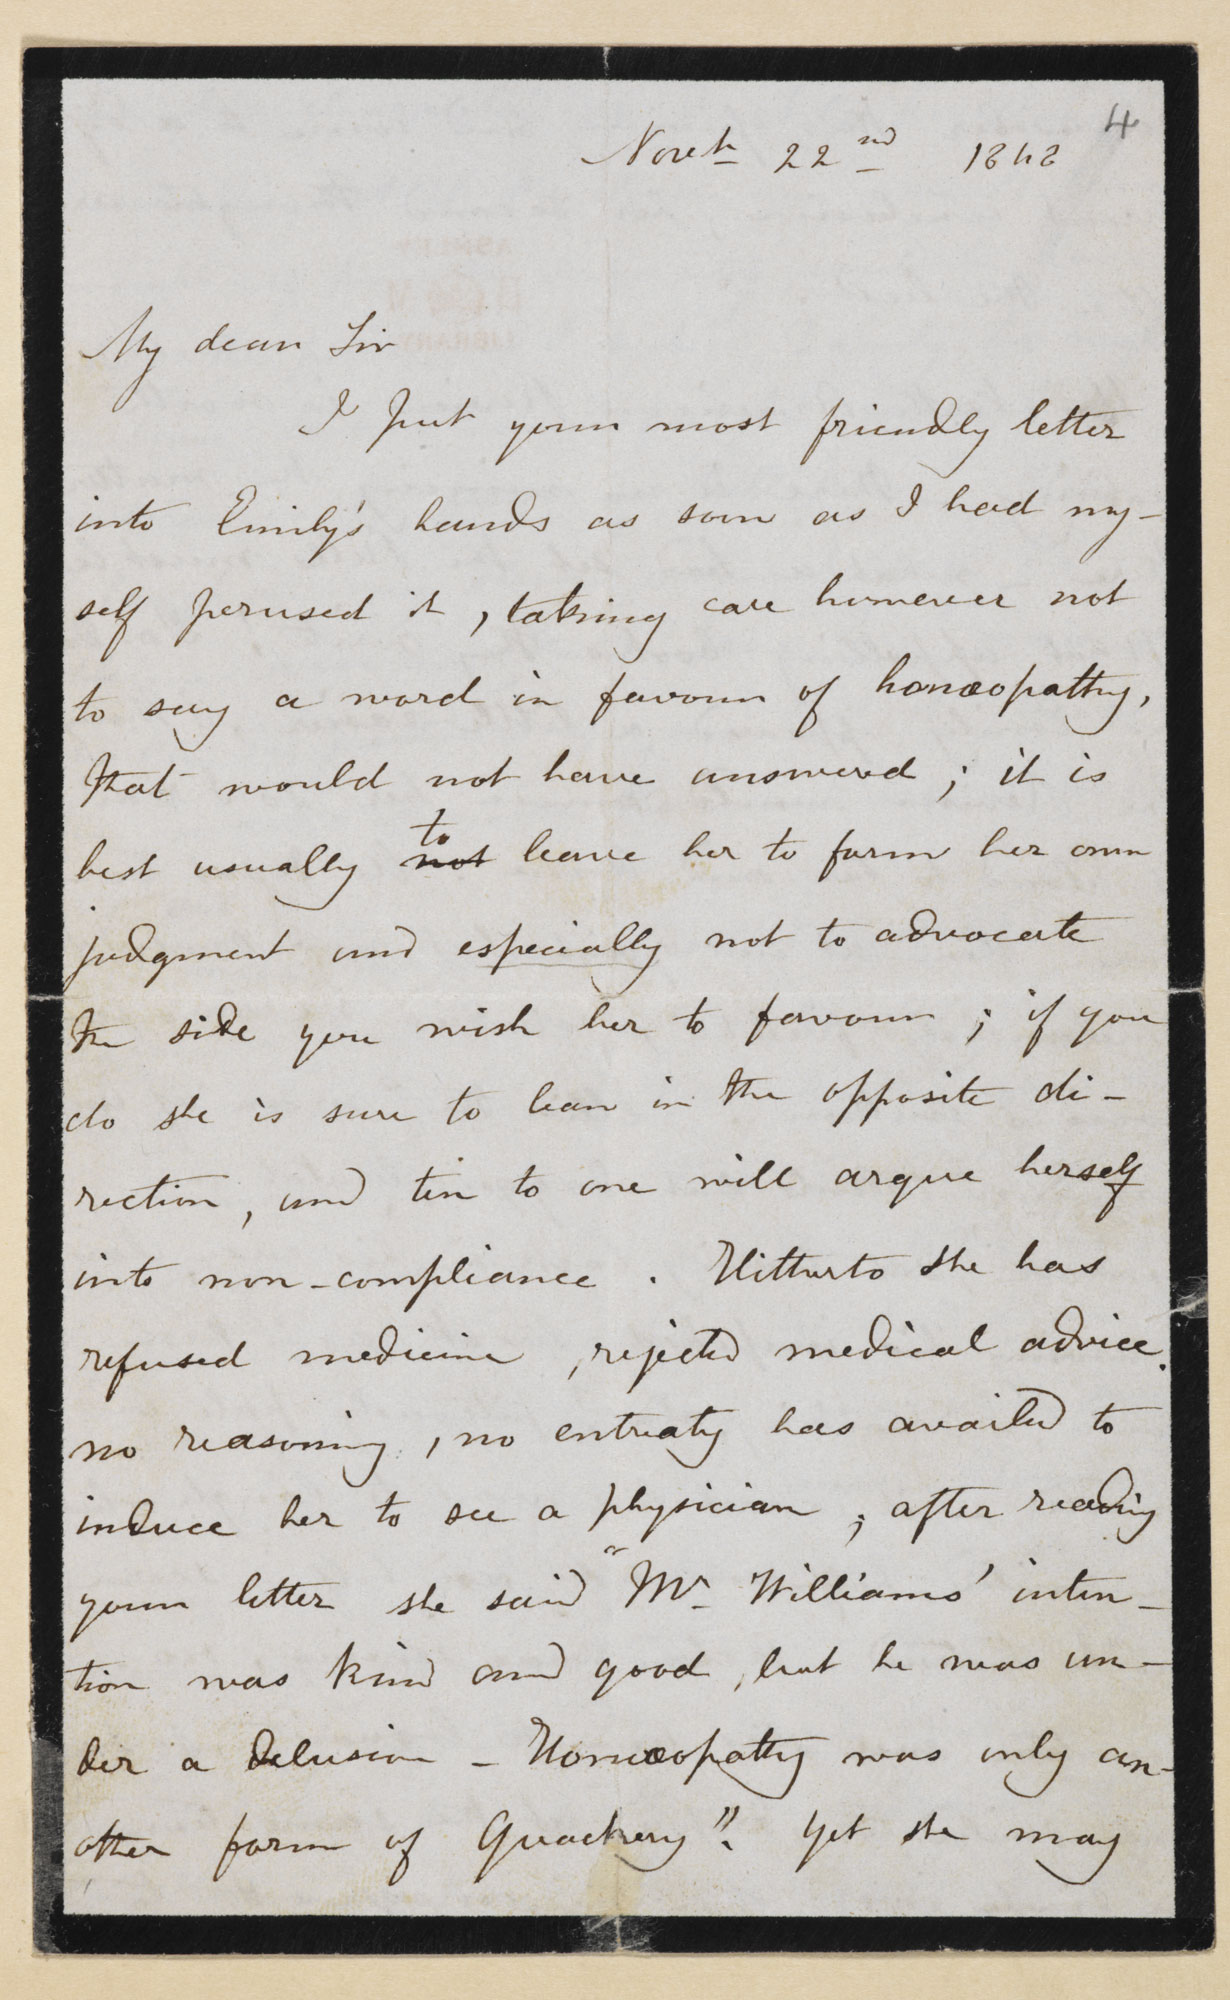 Five letters from Charlotte Brontë to Ellen Nussey and W S Williams, 1848-1854, mainly concerned with the death of her siblings [folio: 4r]